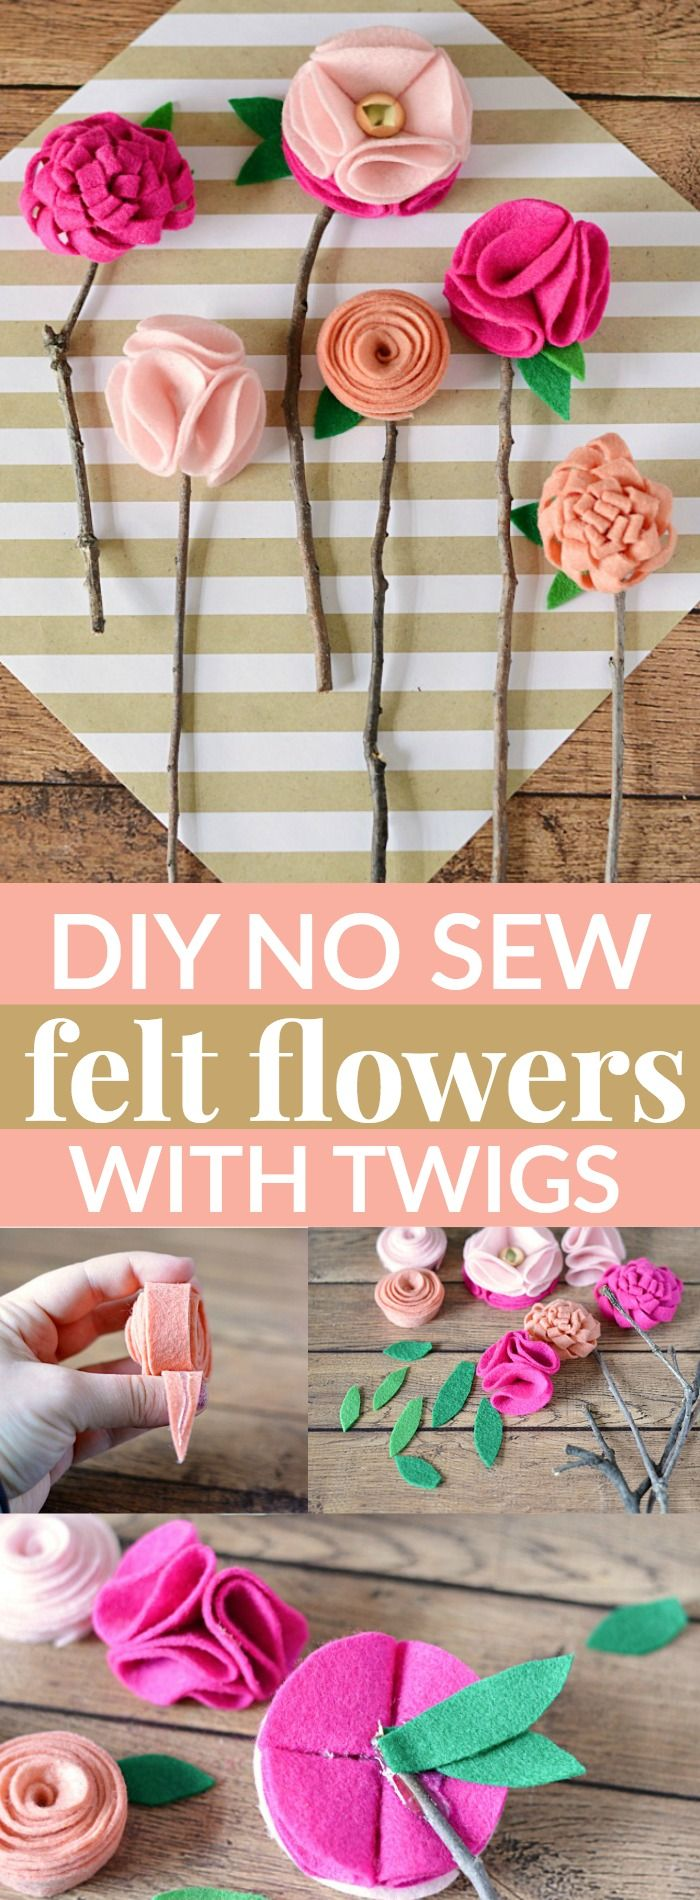 These DIY NO SEW FELT FLOWERS WITH TWIGS.